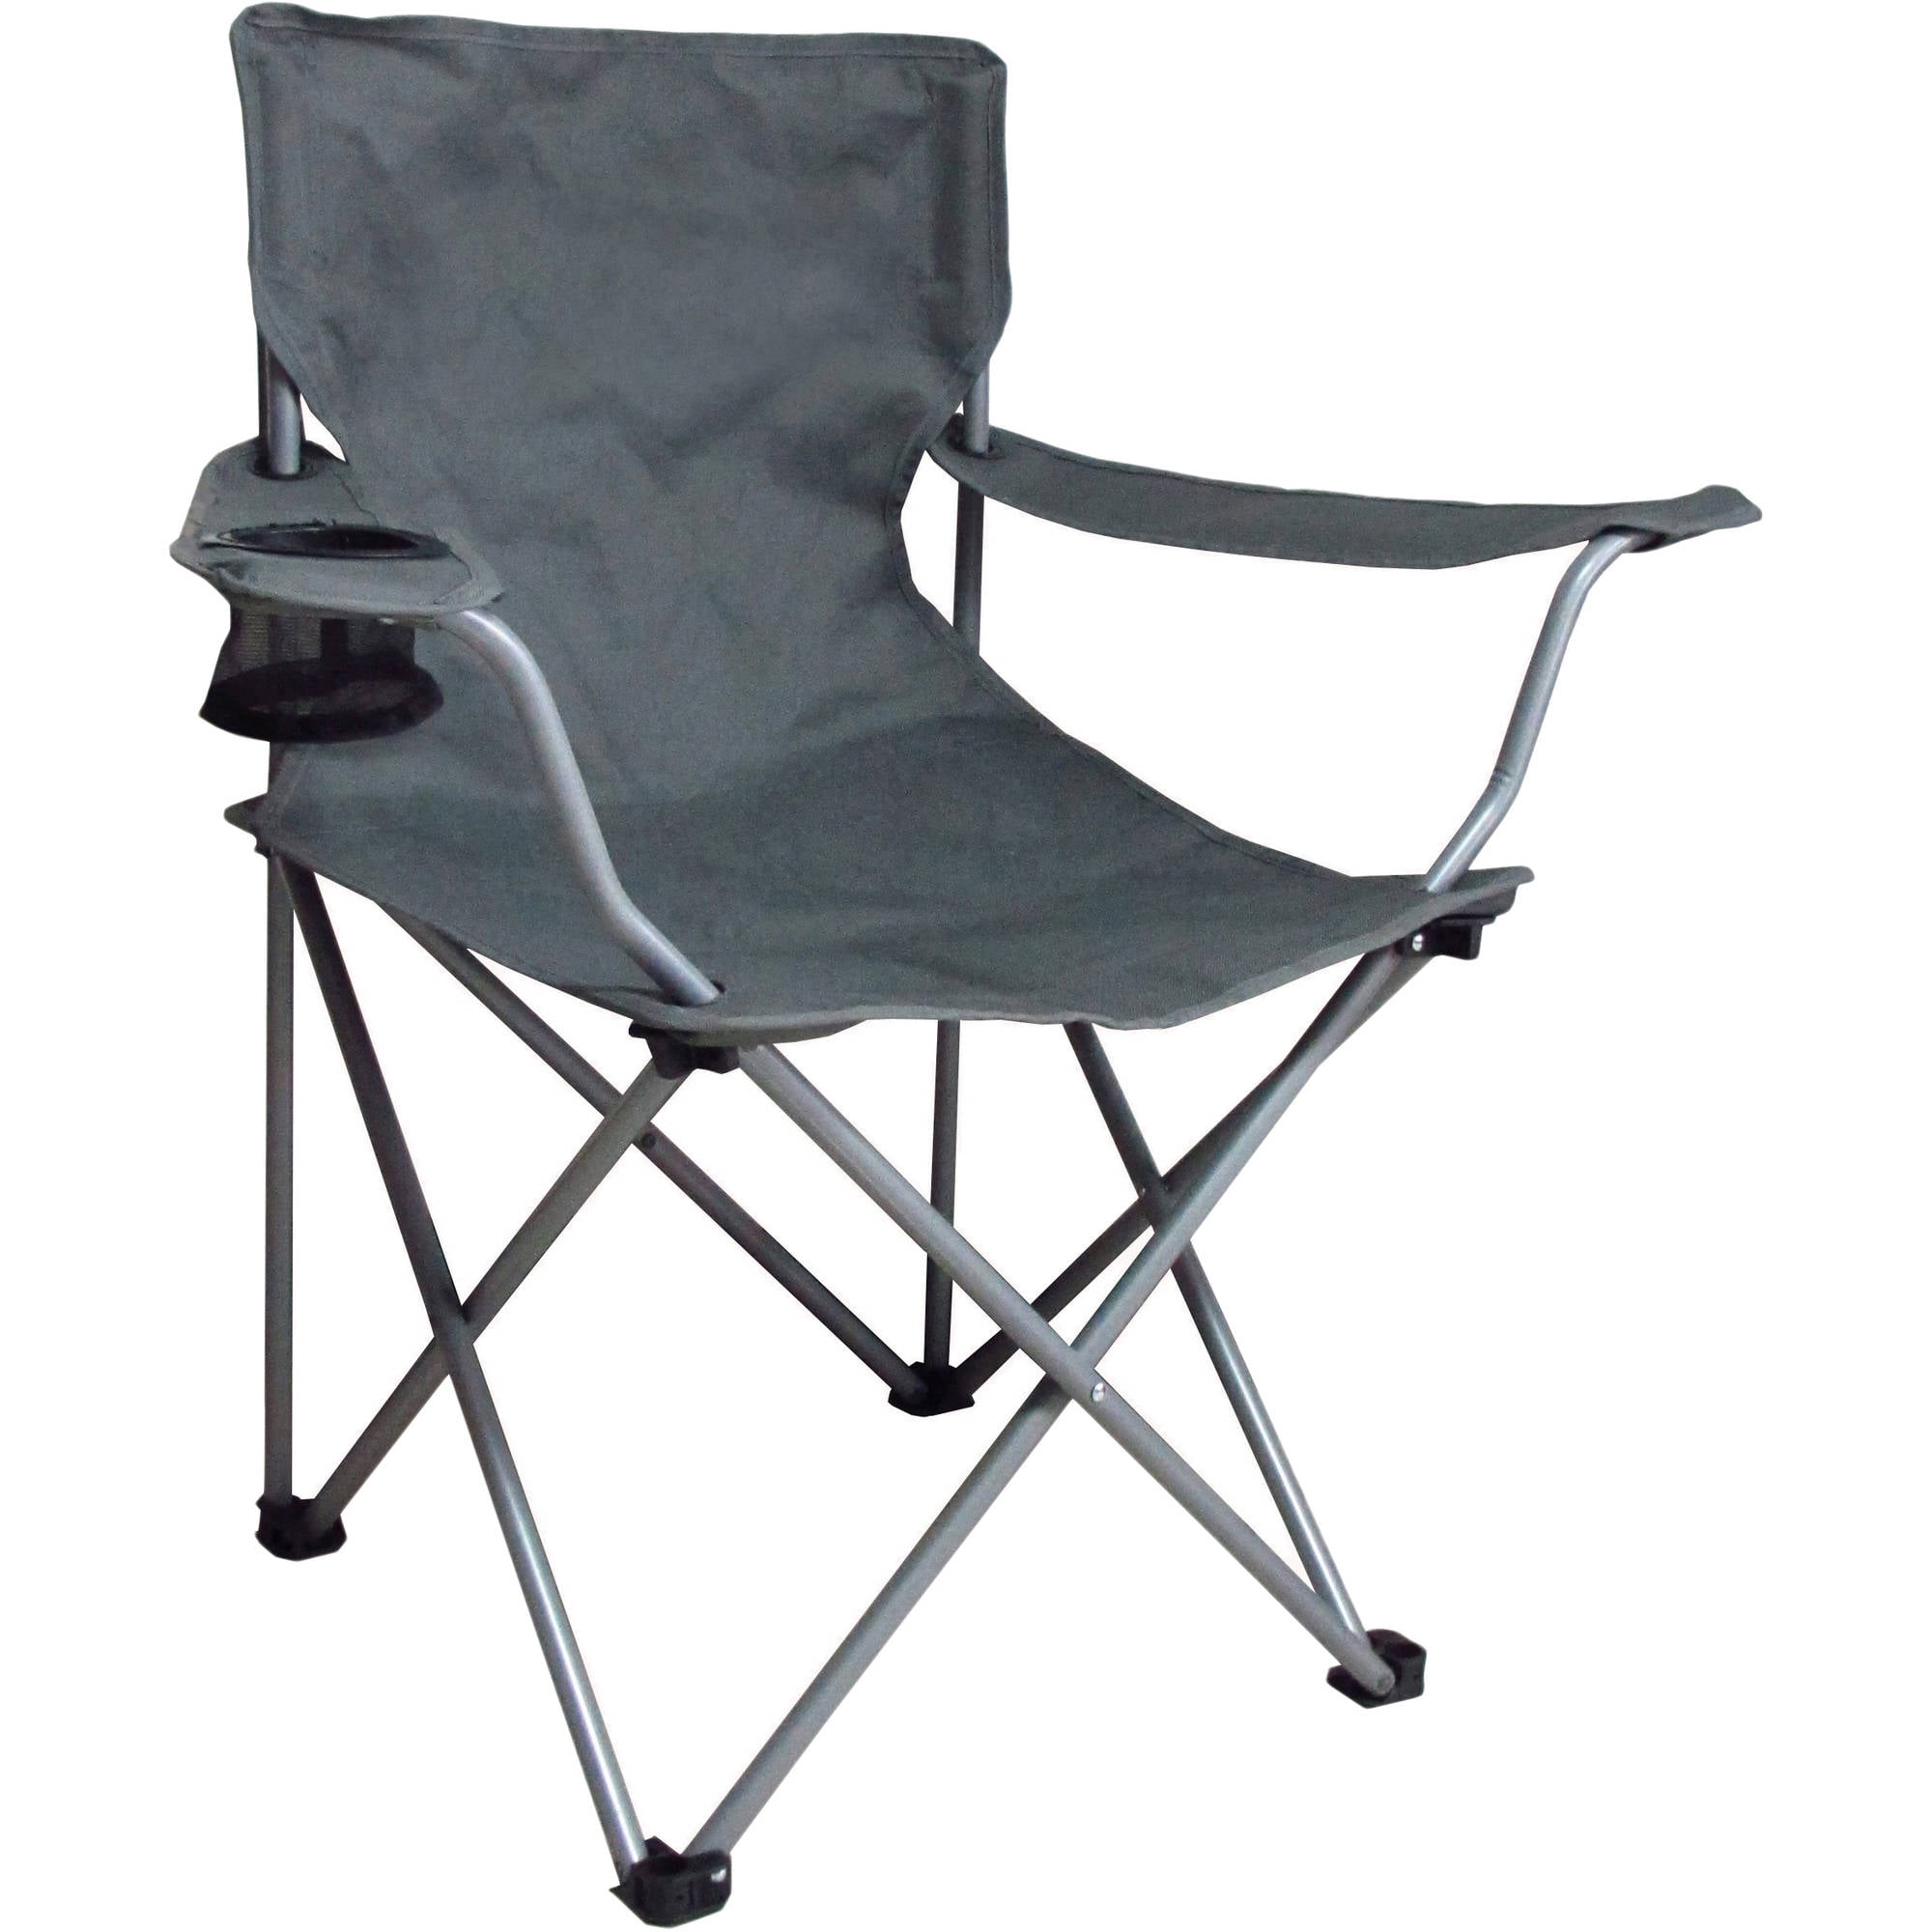 Quik chair folding quad camp chair for Furniture at walmart